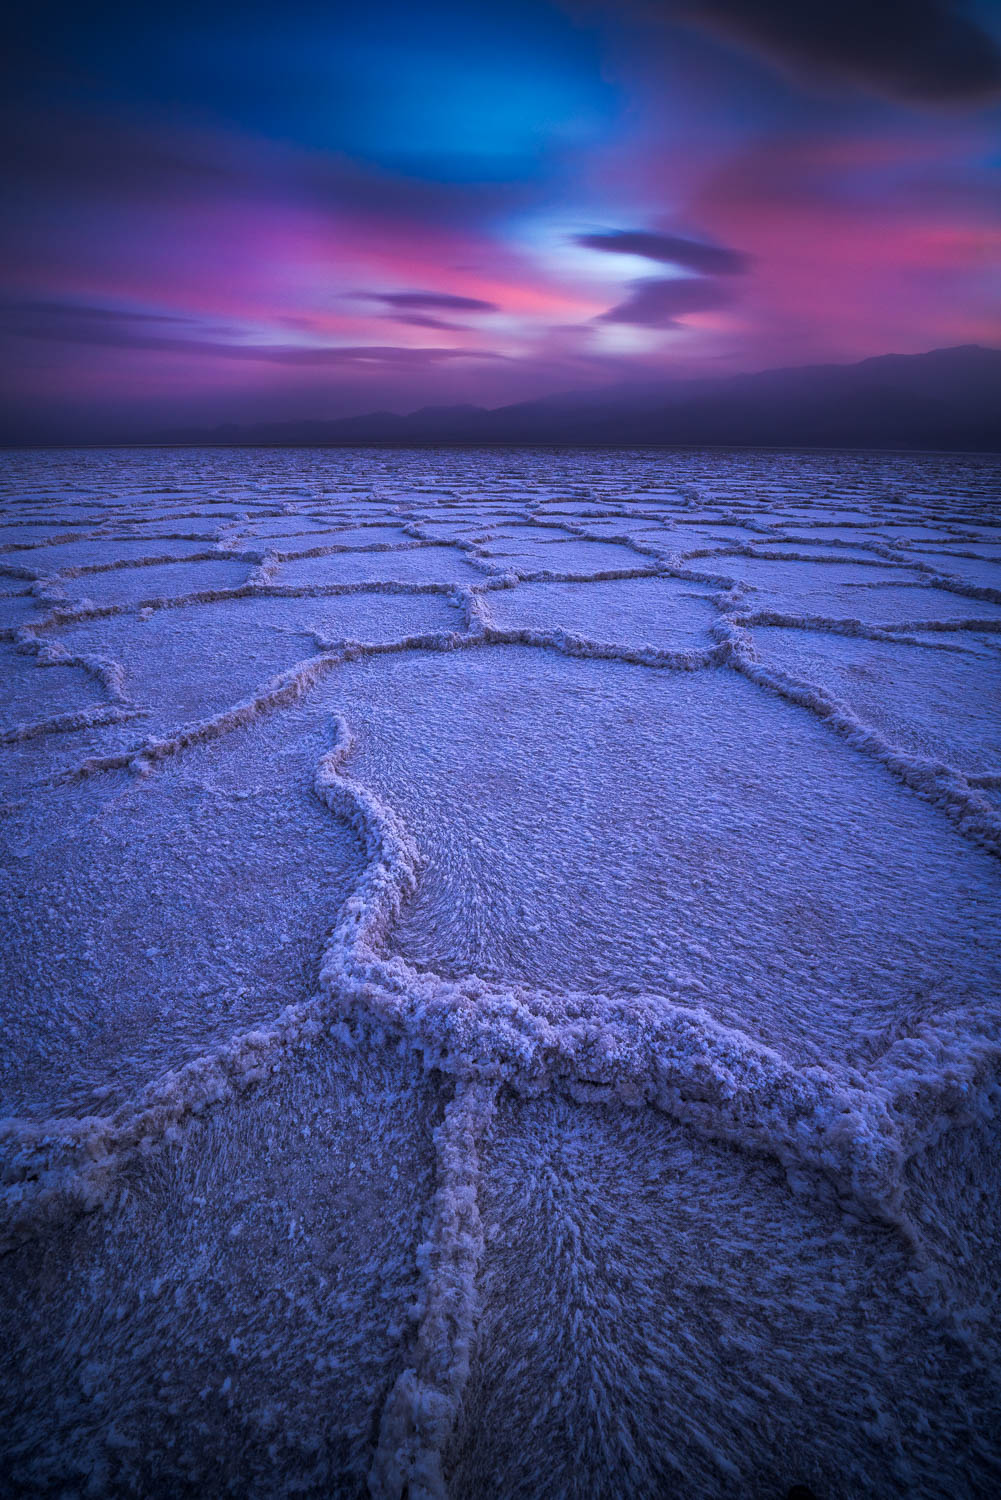 Blue and pink tones over salt flats